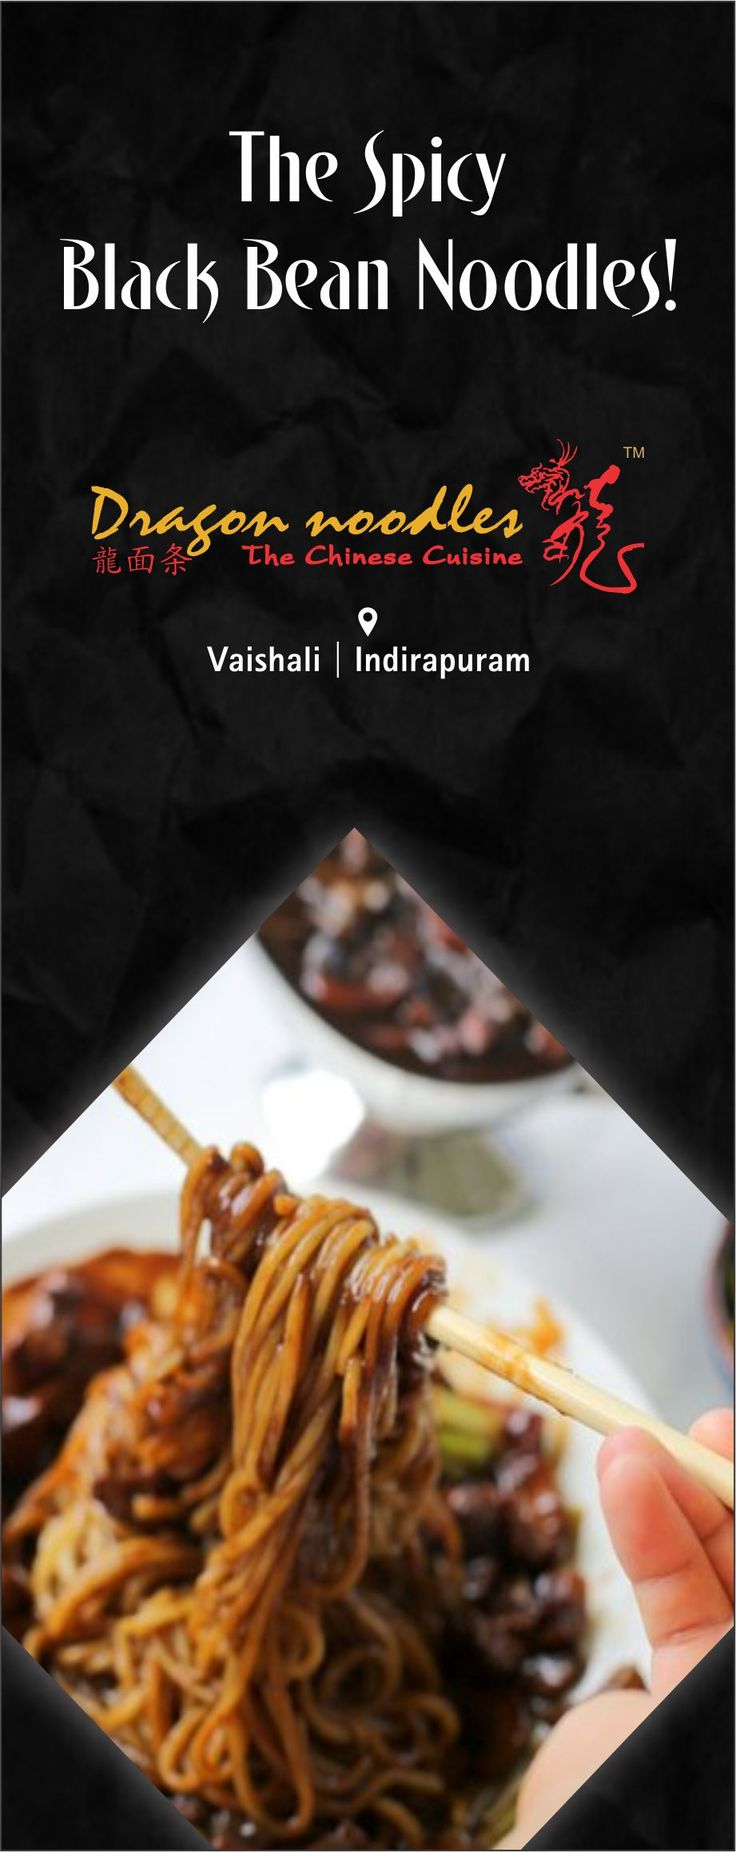 Unique combination of thin luscious noodles with smoky flavored whole black bean sautéed with vegetables and black bean sauce.#DragonNoodles #Chinese #Food #Ghaziabad #foodies #BlackBeanNoodles